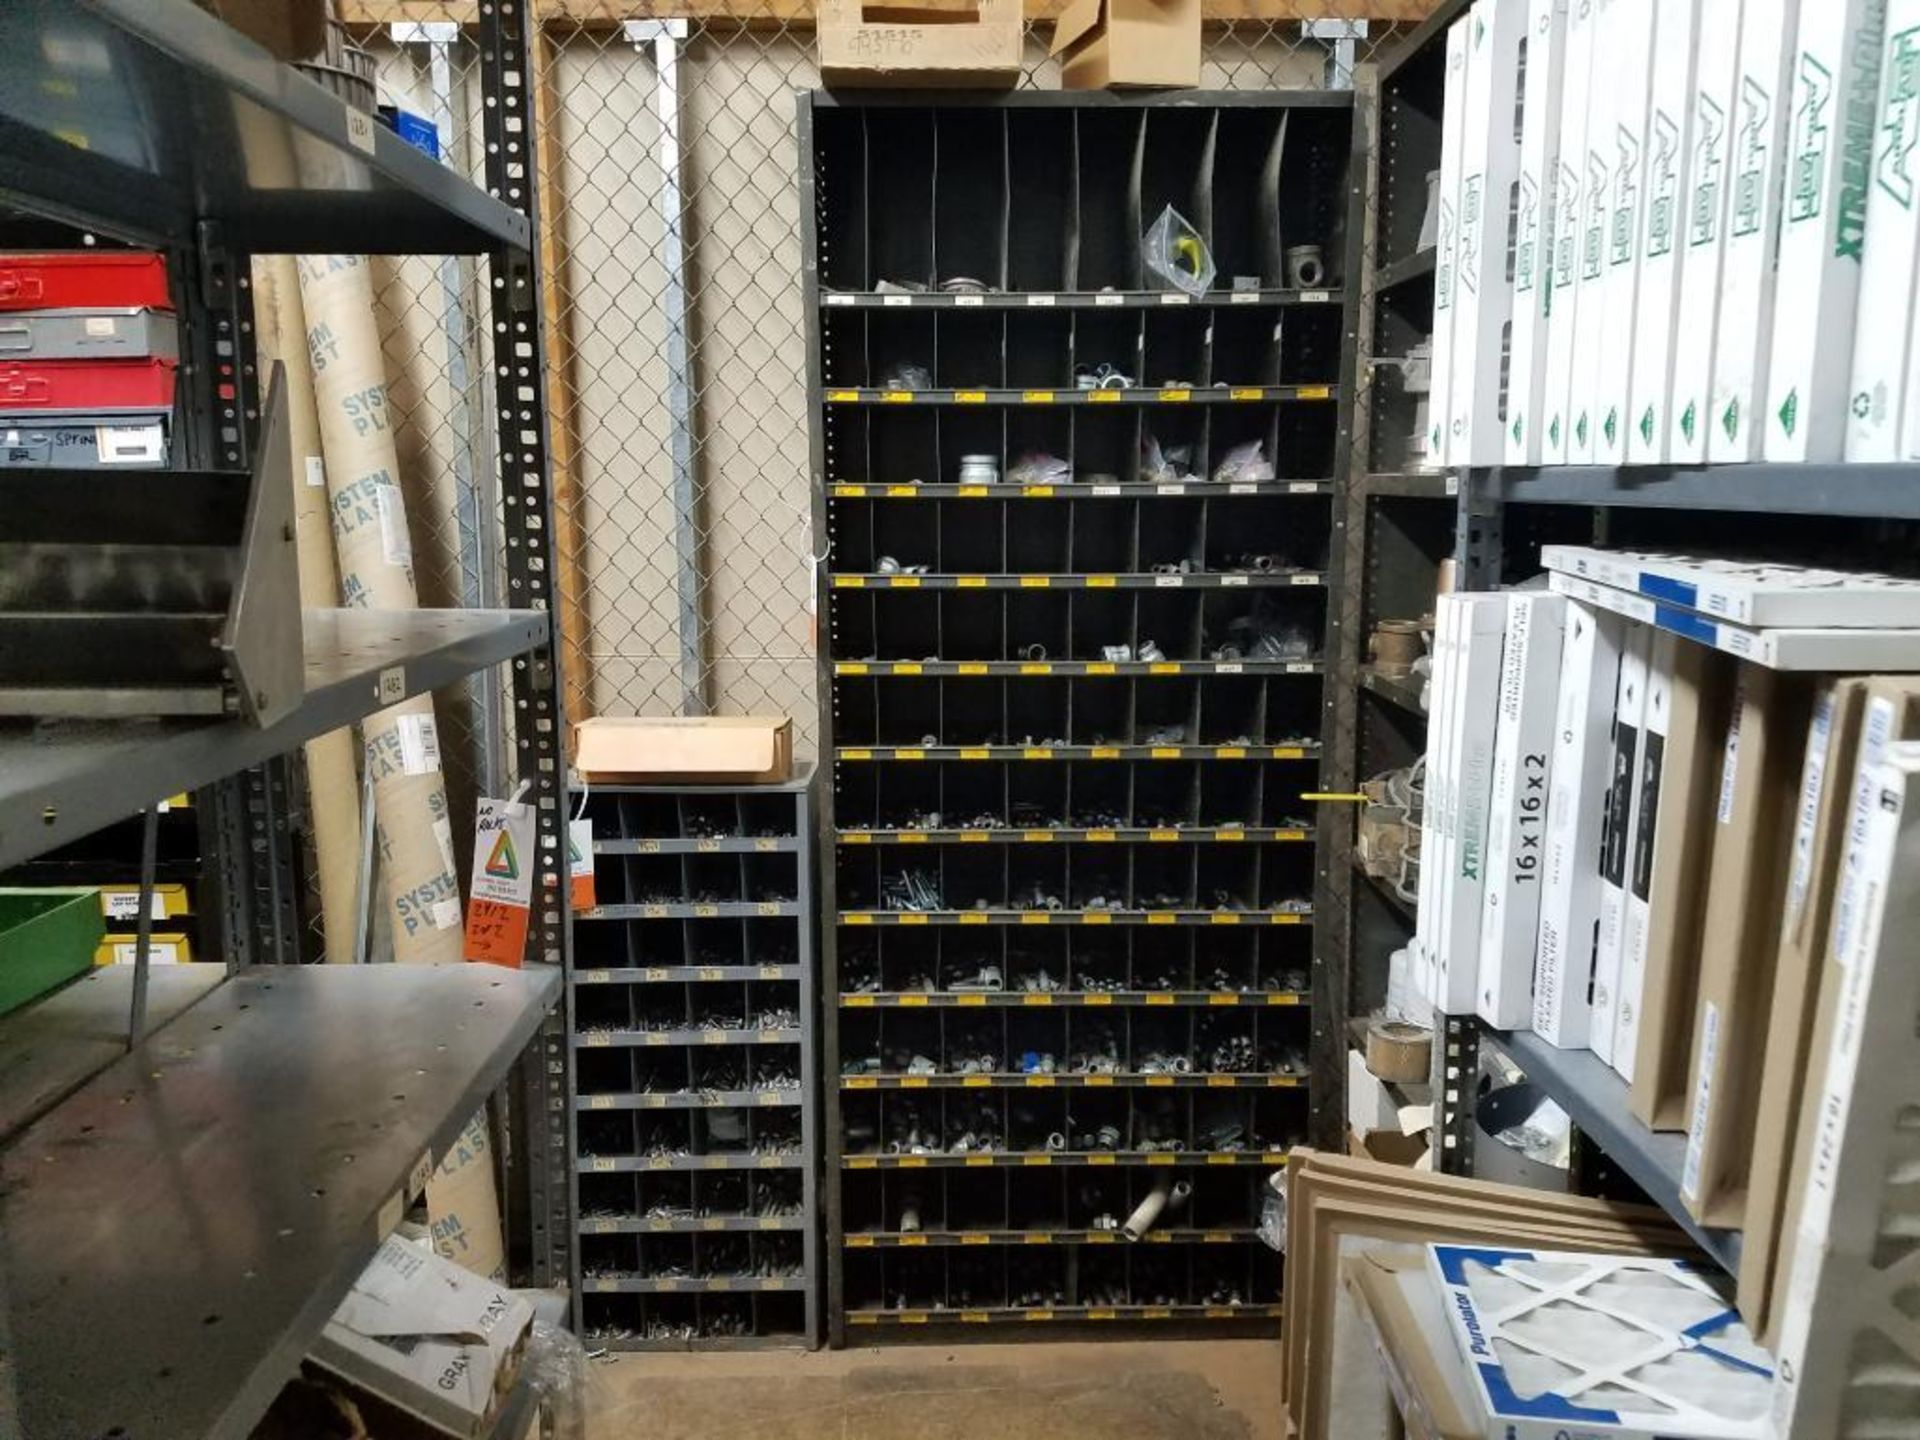 all shelving and storage units located in MRO room - Image 7 of 11